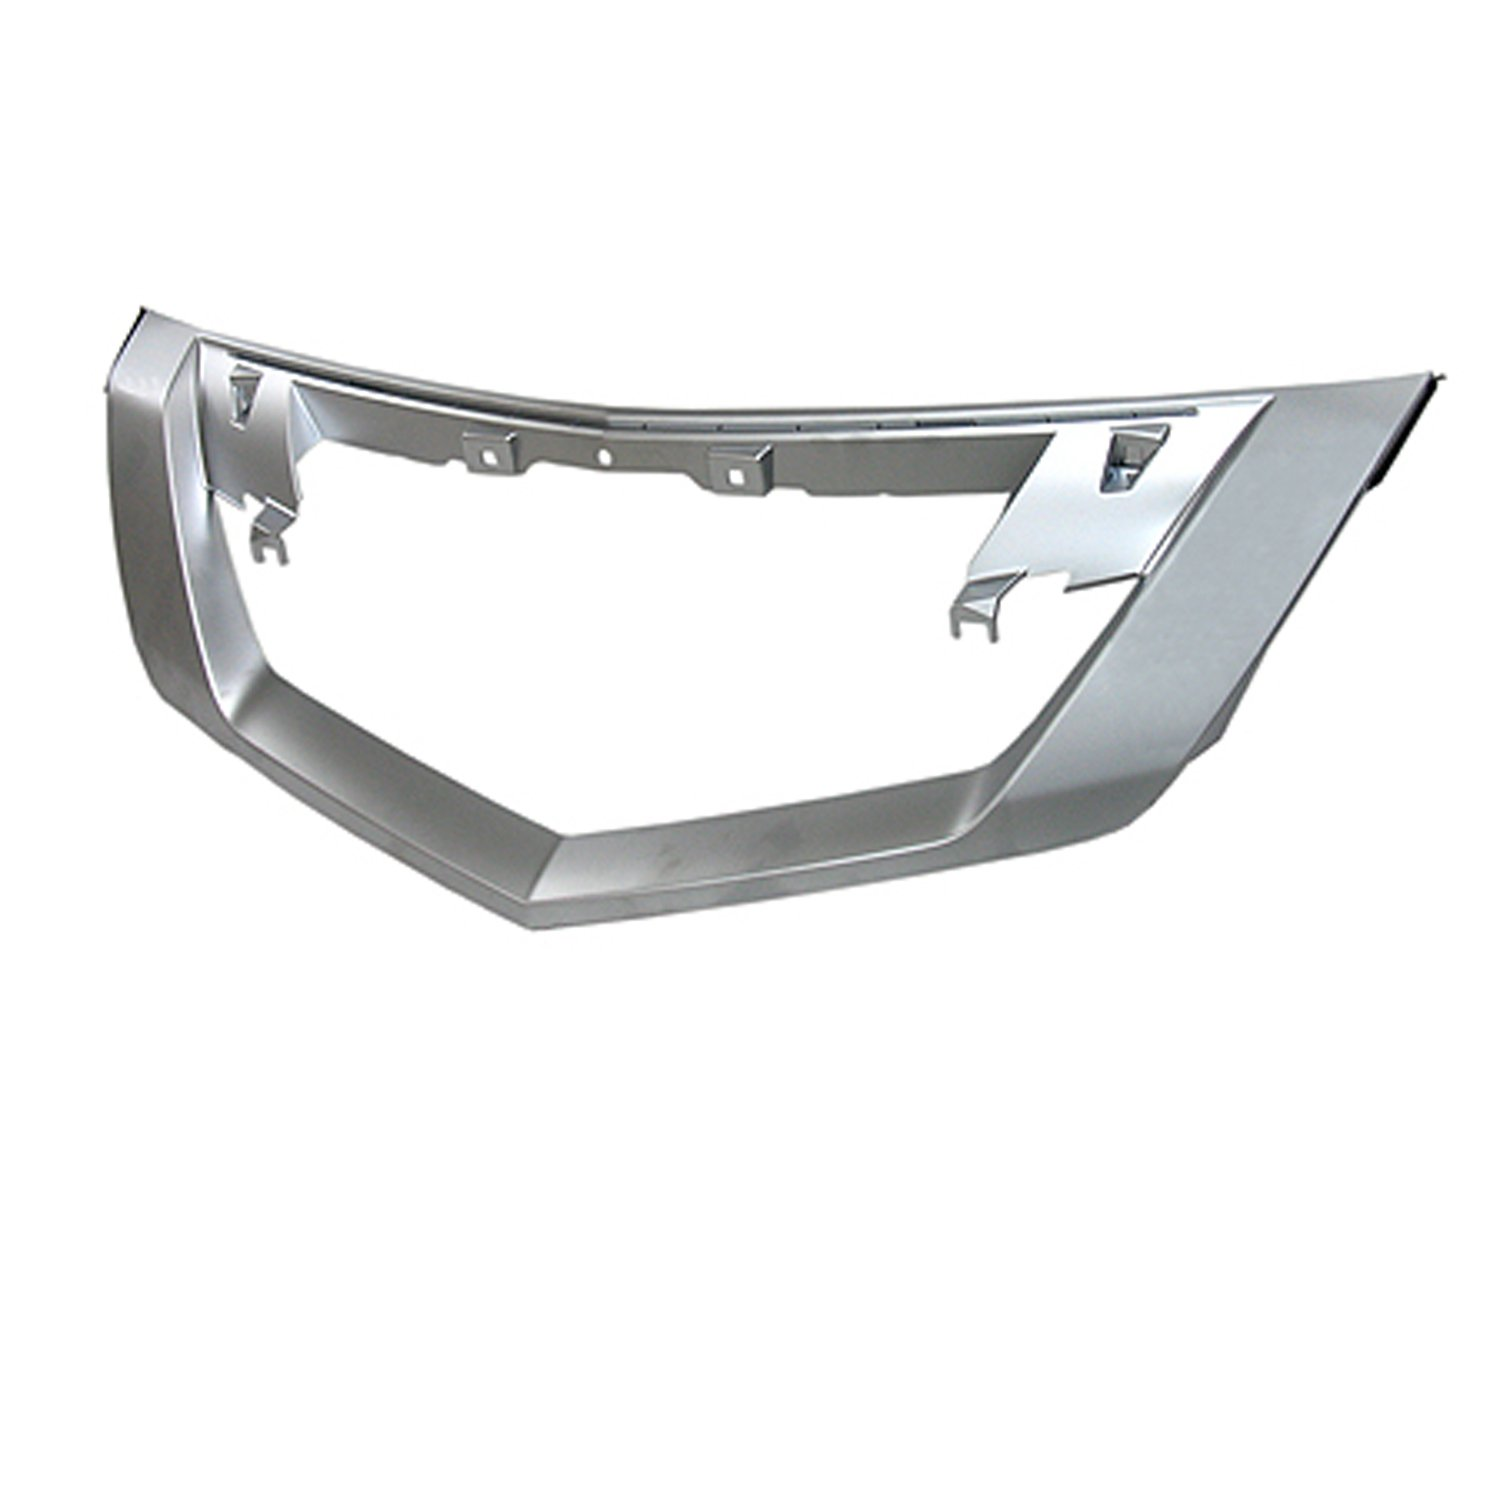 CPP Grille Molding for 2009-2011 Acura TL AC1210114